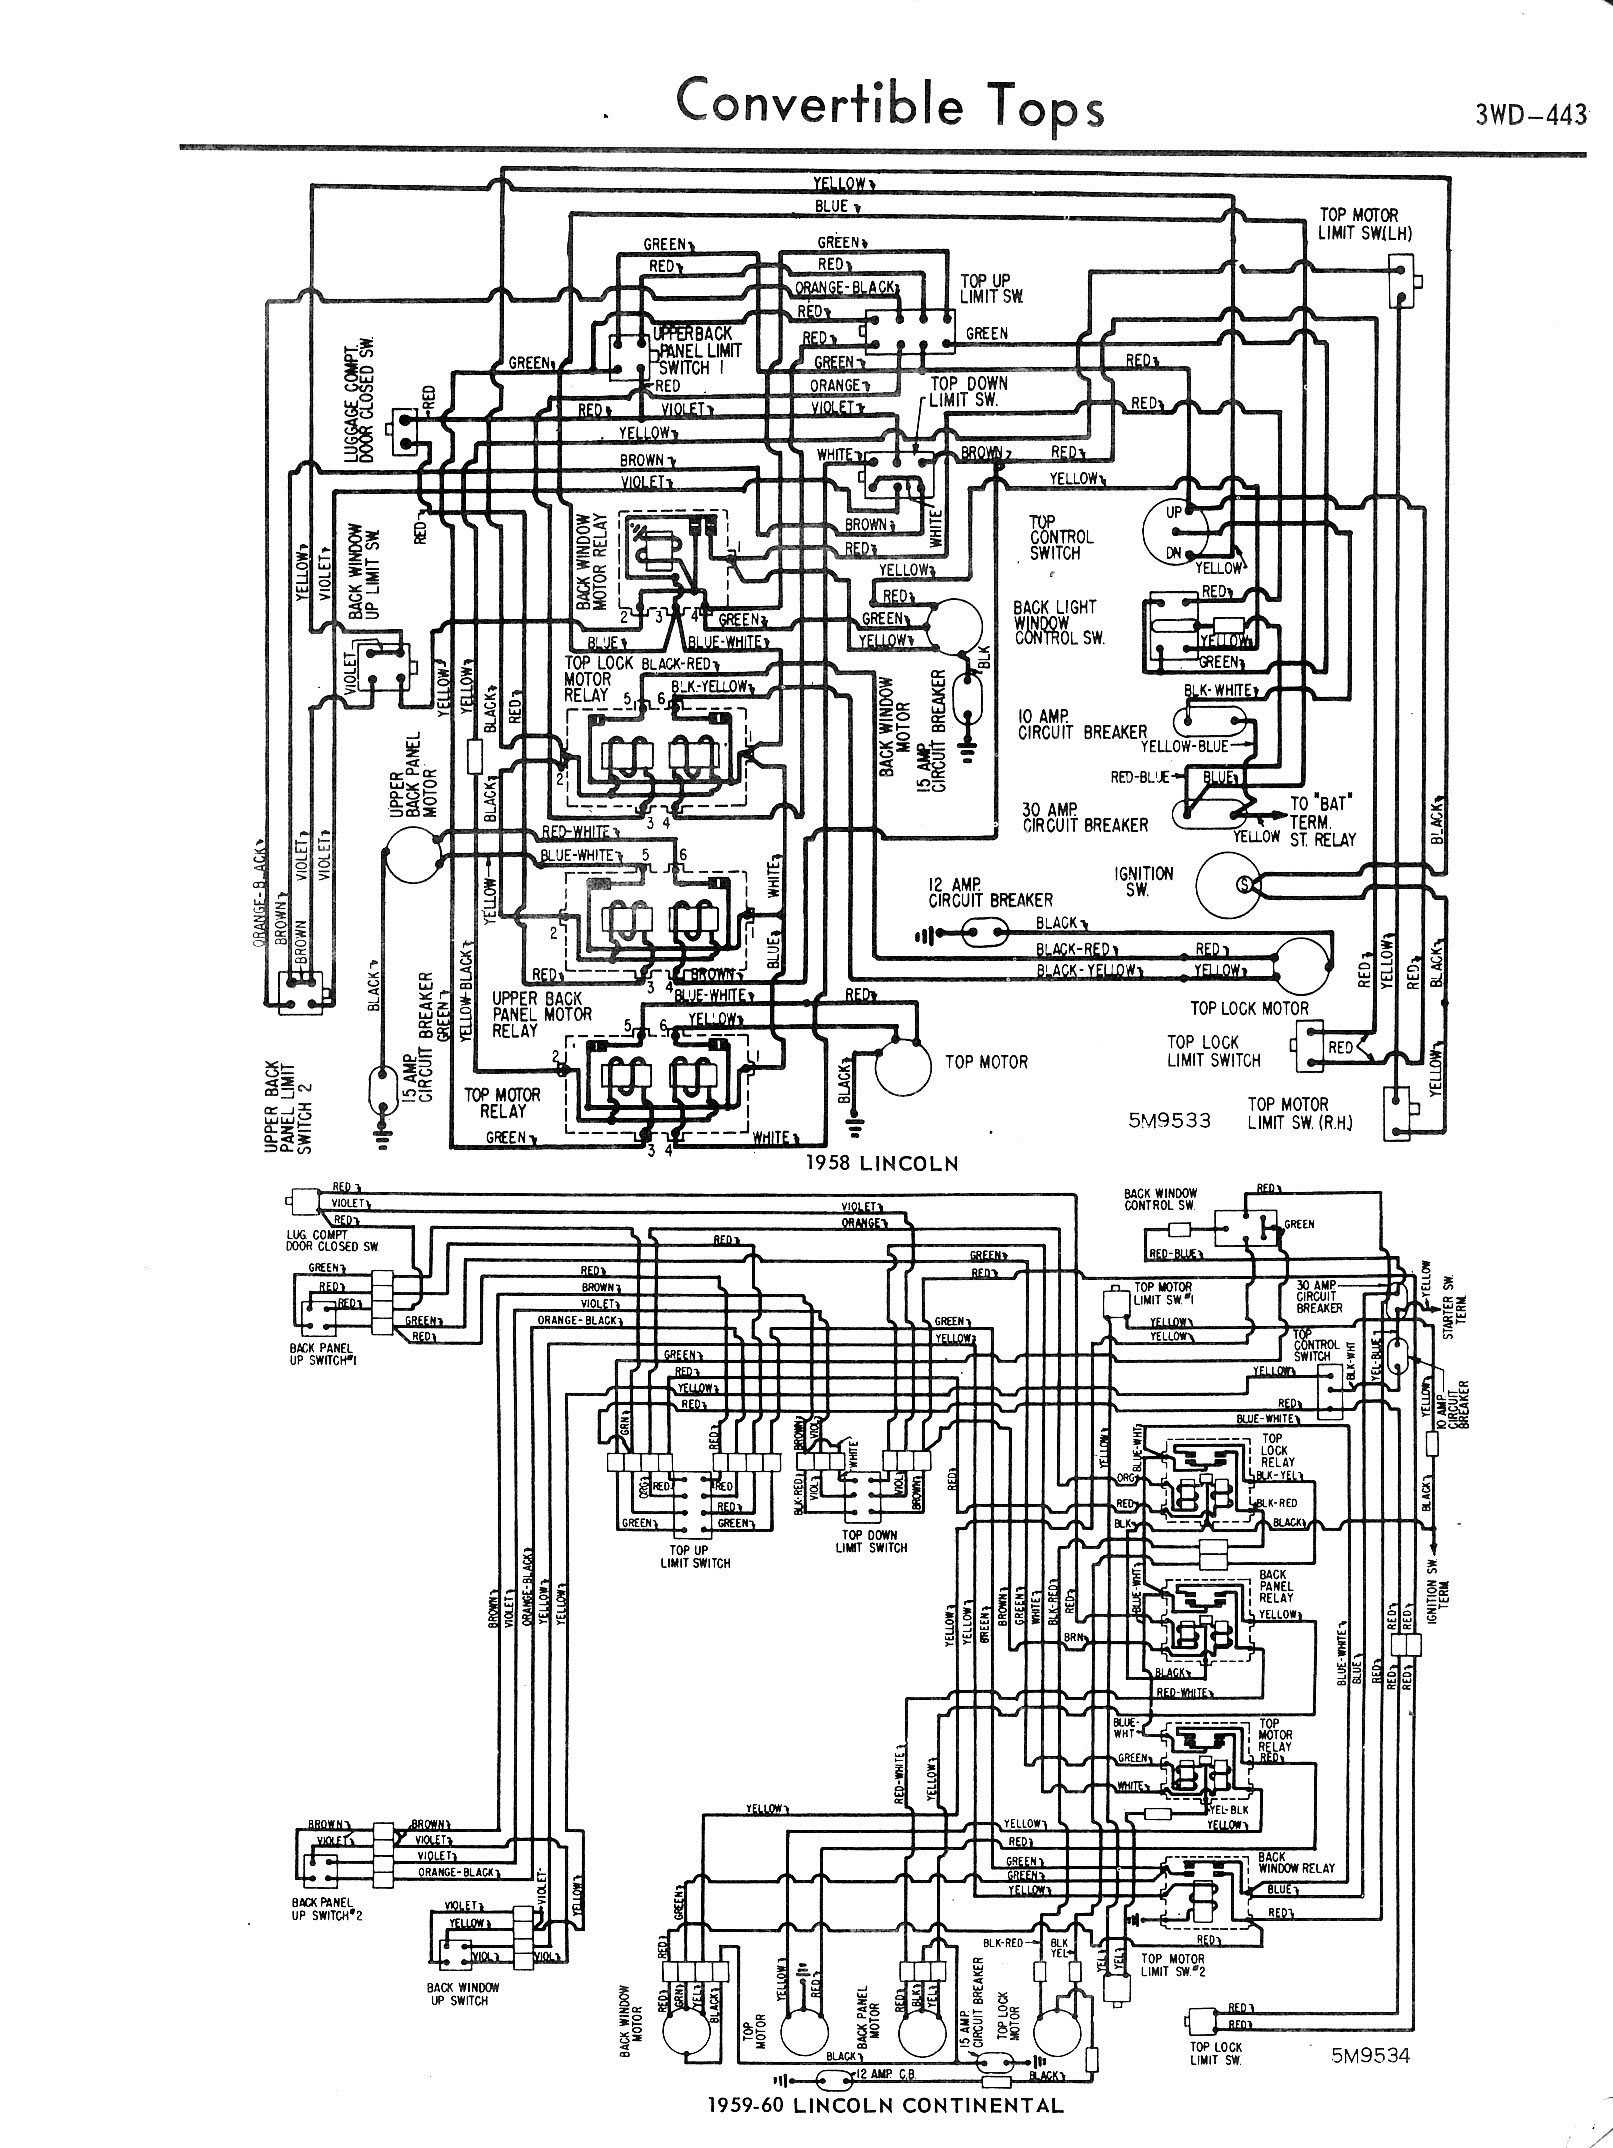 Home wiring diagrams appliances